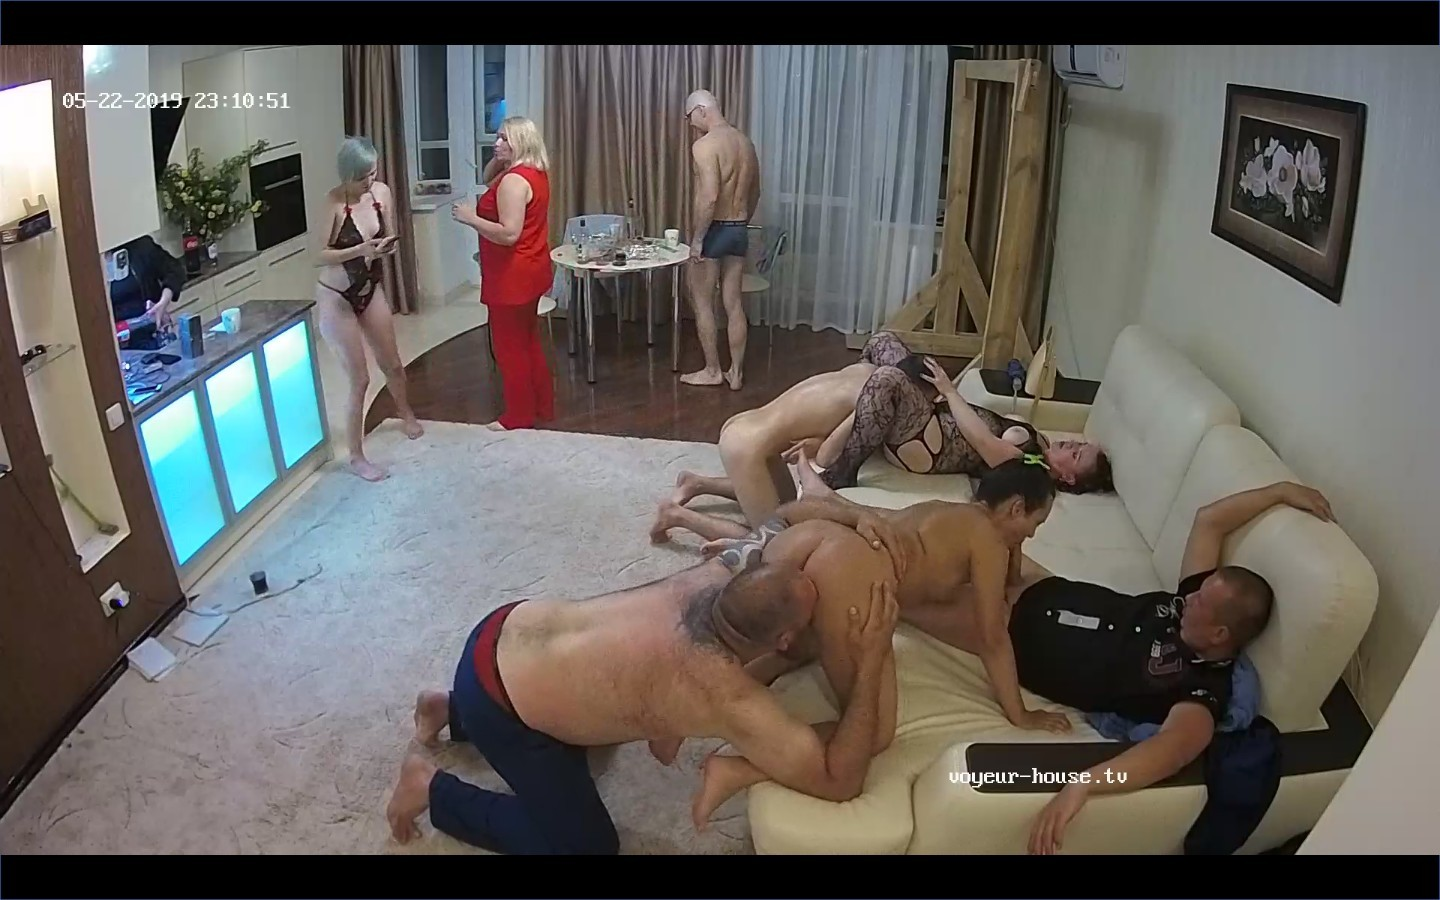 Ruta Christian and guests evening orgy,May 22